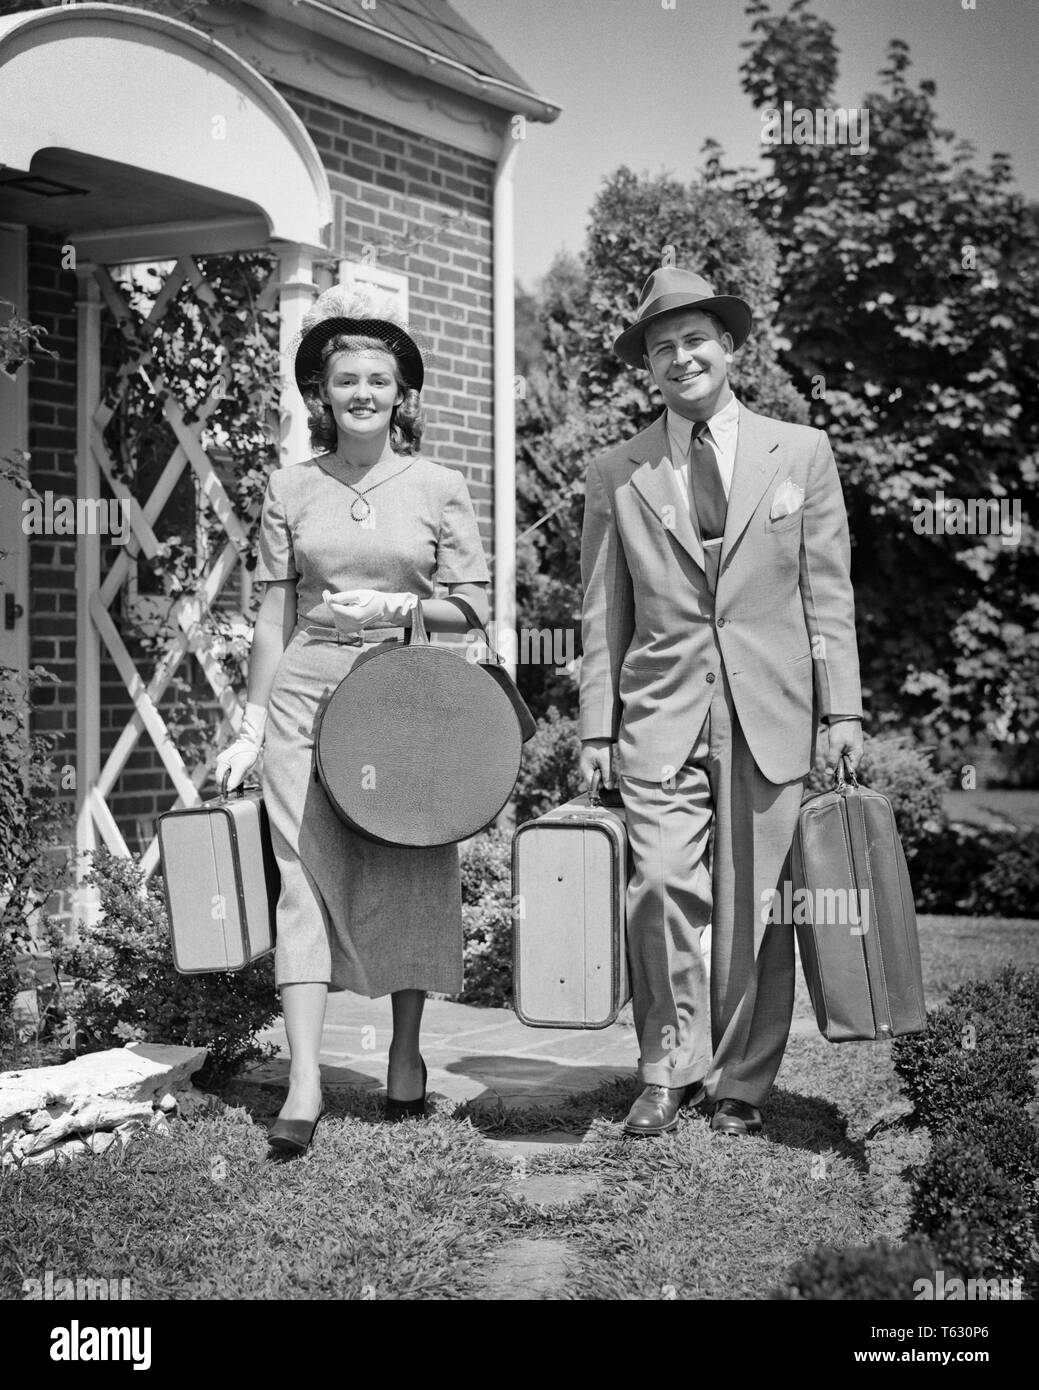 1940s 1950s COUPLE MAN WOMAN LEAVING HOUSE LOOKING AT CAMERA BEGINNING A TRIP CARRYING LUGGAGE SUITCASES AND HATBOX - s985 HAR001 HARS JOY LIFESTYLE FEMALES HOUSES MARRIED SPOUSE HUSBANDS HEALTHINESS HOME LIFE COPY SPACE FRIENDSHIP FULL-LENGTH LADIES PERSONS RESIDENTIAL MALES BUILDINGS CONFIDENCE B&W EYE CONTACT TIME OFF SUIT AND TIE HAPPINESS CHEERFUL ADVENTURE LEISURE TRIP GETAWAY DIRECTION HOLIDAYS HOMES SMILES JOYFUL RESIDENCE STYLISH HATBOX WHITE GLOVES COOPERATION HAT HATS MID-ADULT MID-ADULT MAN MID-ADULT WOMAN TOGETHERNESS VACATIONS WIVES BEGINNING BLACK AND WHITE CAUCASIAN ETHNICITY - Stock Image